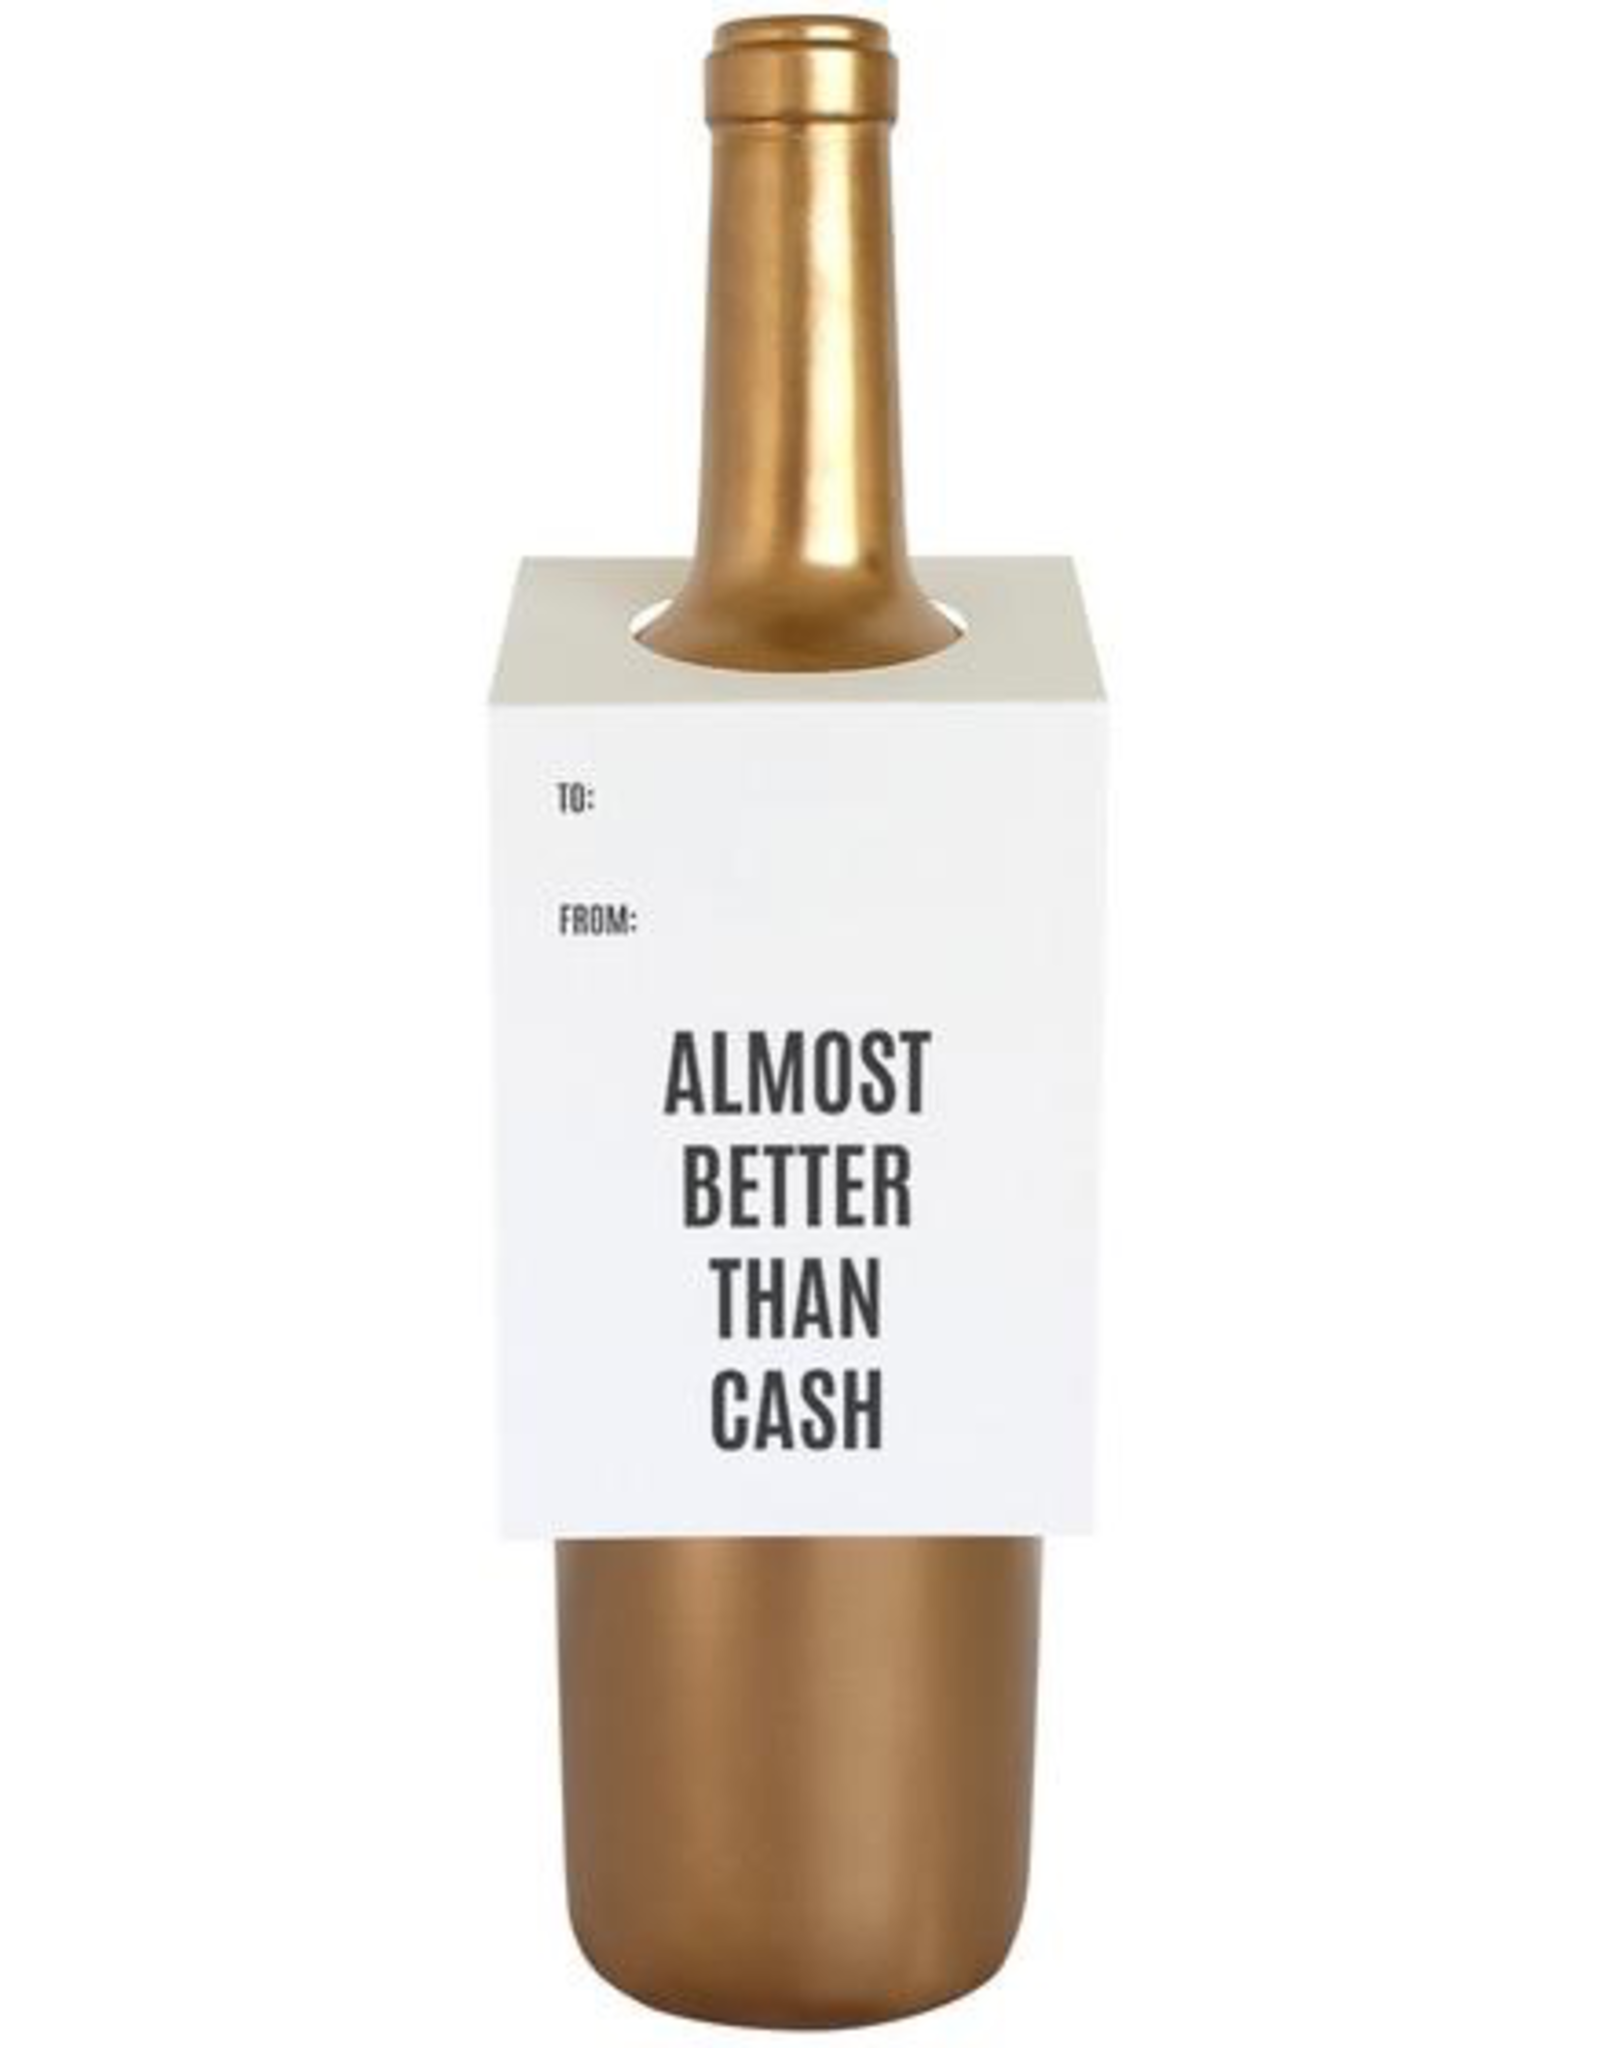 Card, Wine Tag, Almost Better Than Cash